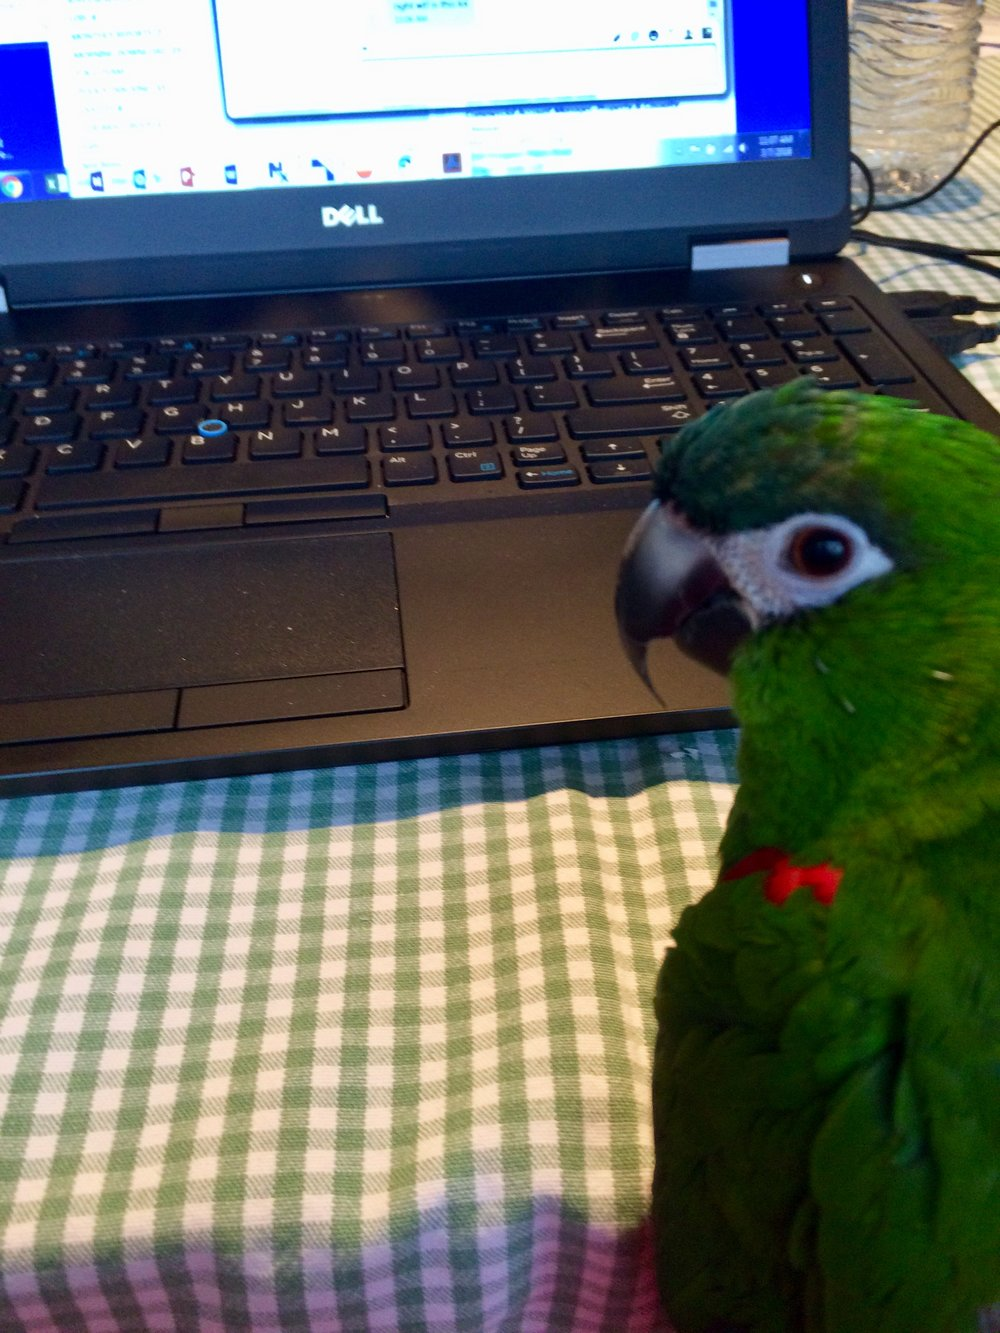 """Kiwi Cornelius Gullace was a green-feathered, 19 year-old miniature macaw. His main catch phrases were """"Say hello!"""" and """"Kiwi good boy?"""". He also liked to laugh, roll his R's, and make a sound that goes """"Wakahwakahwakwakah."""", He loved dancing, tug-of-war, raviolis, and mini-wheats. He was extremely protective over Gullace's mom and would most likely attack you if you are not her. He was an absolute joy to talk to, though."""